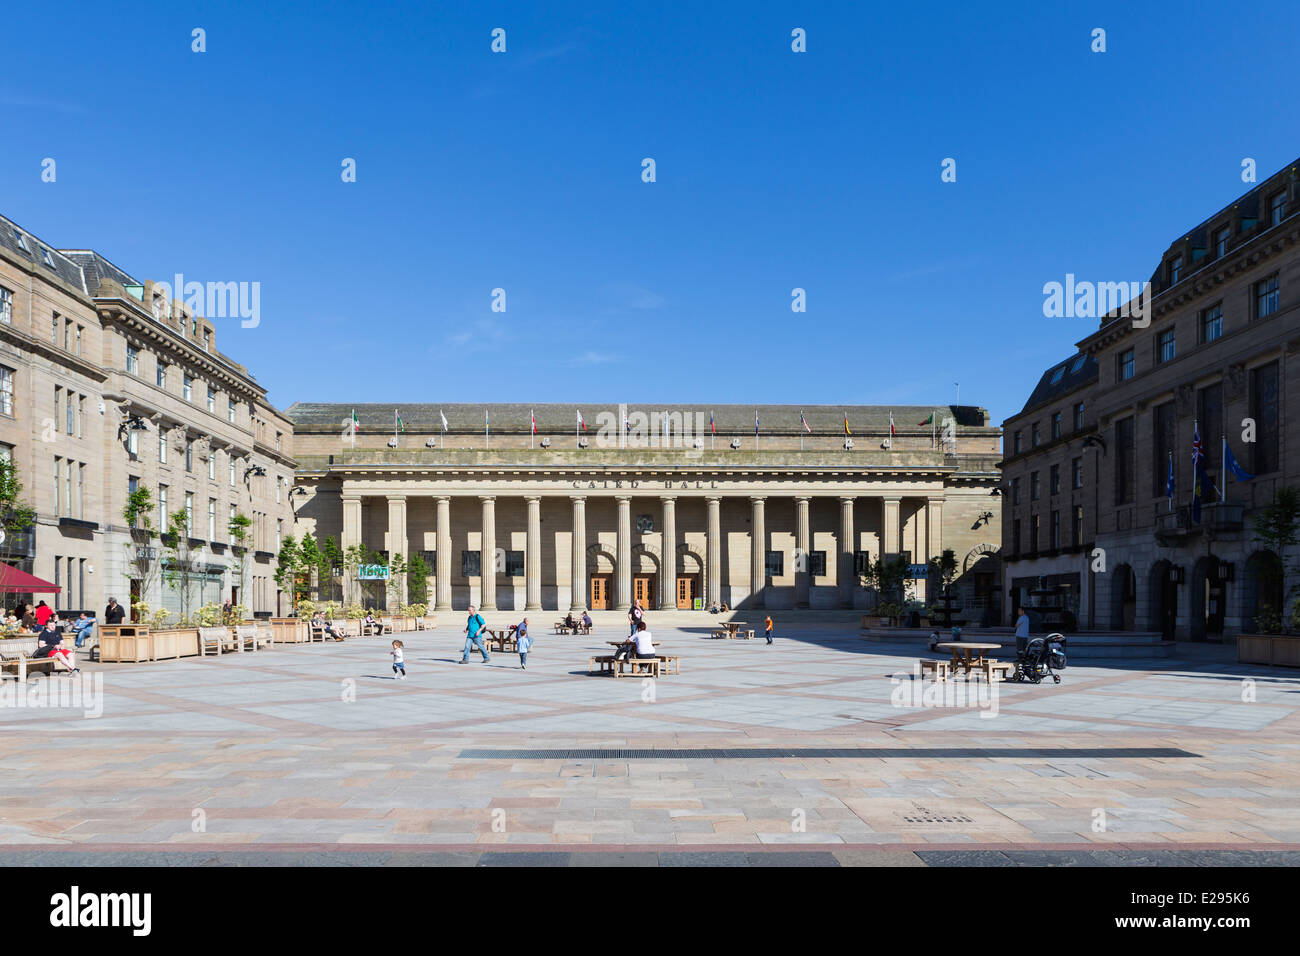 Caird Hall City Square Dundee Tayside Scotland - Stock Image